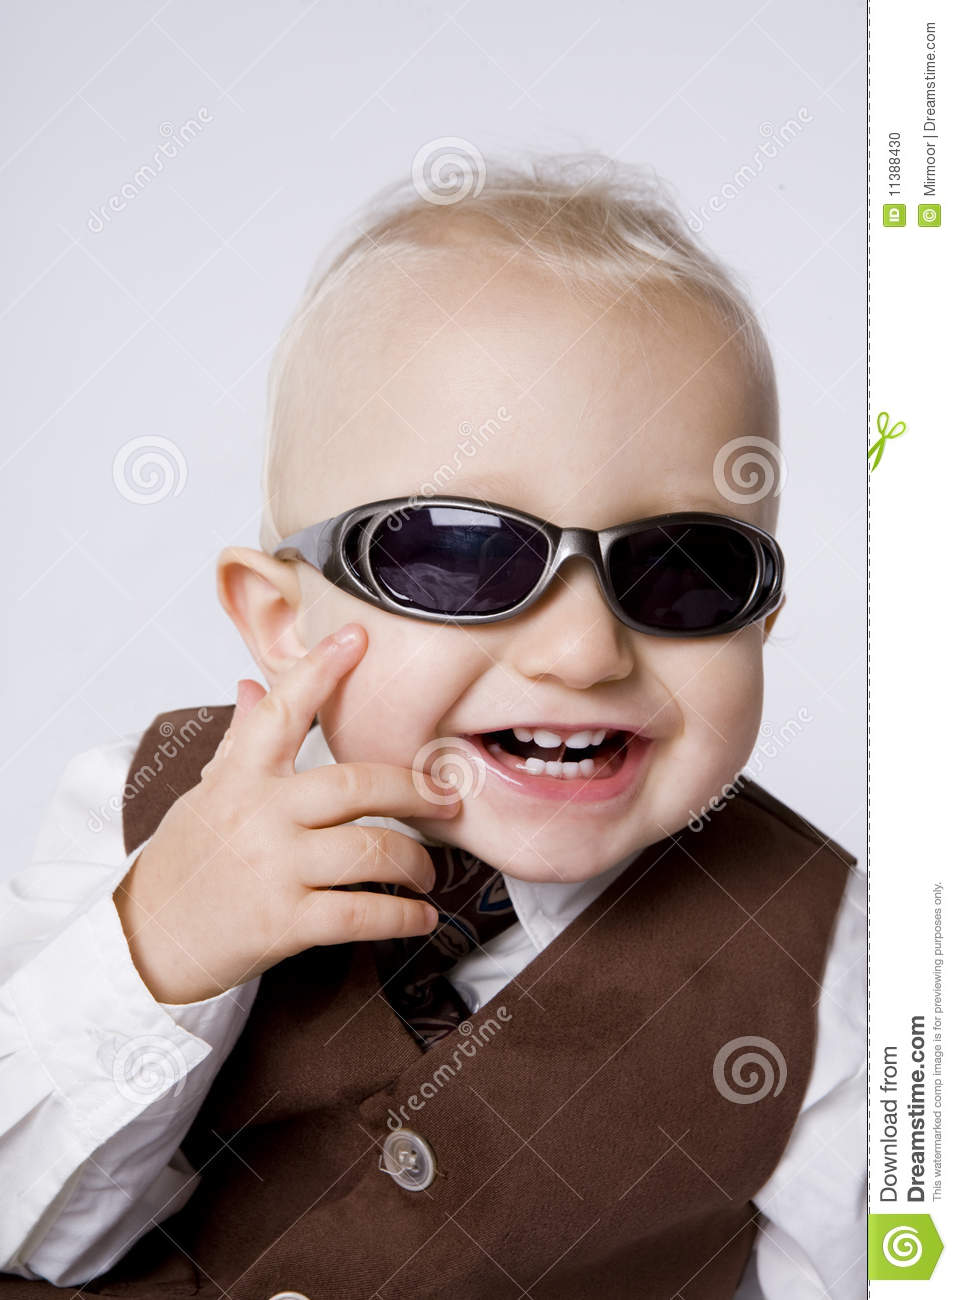 Little Boy in Sunglasses